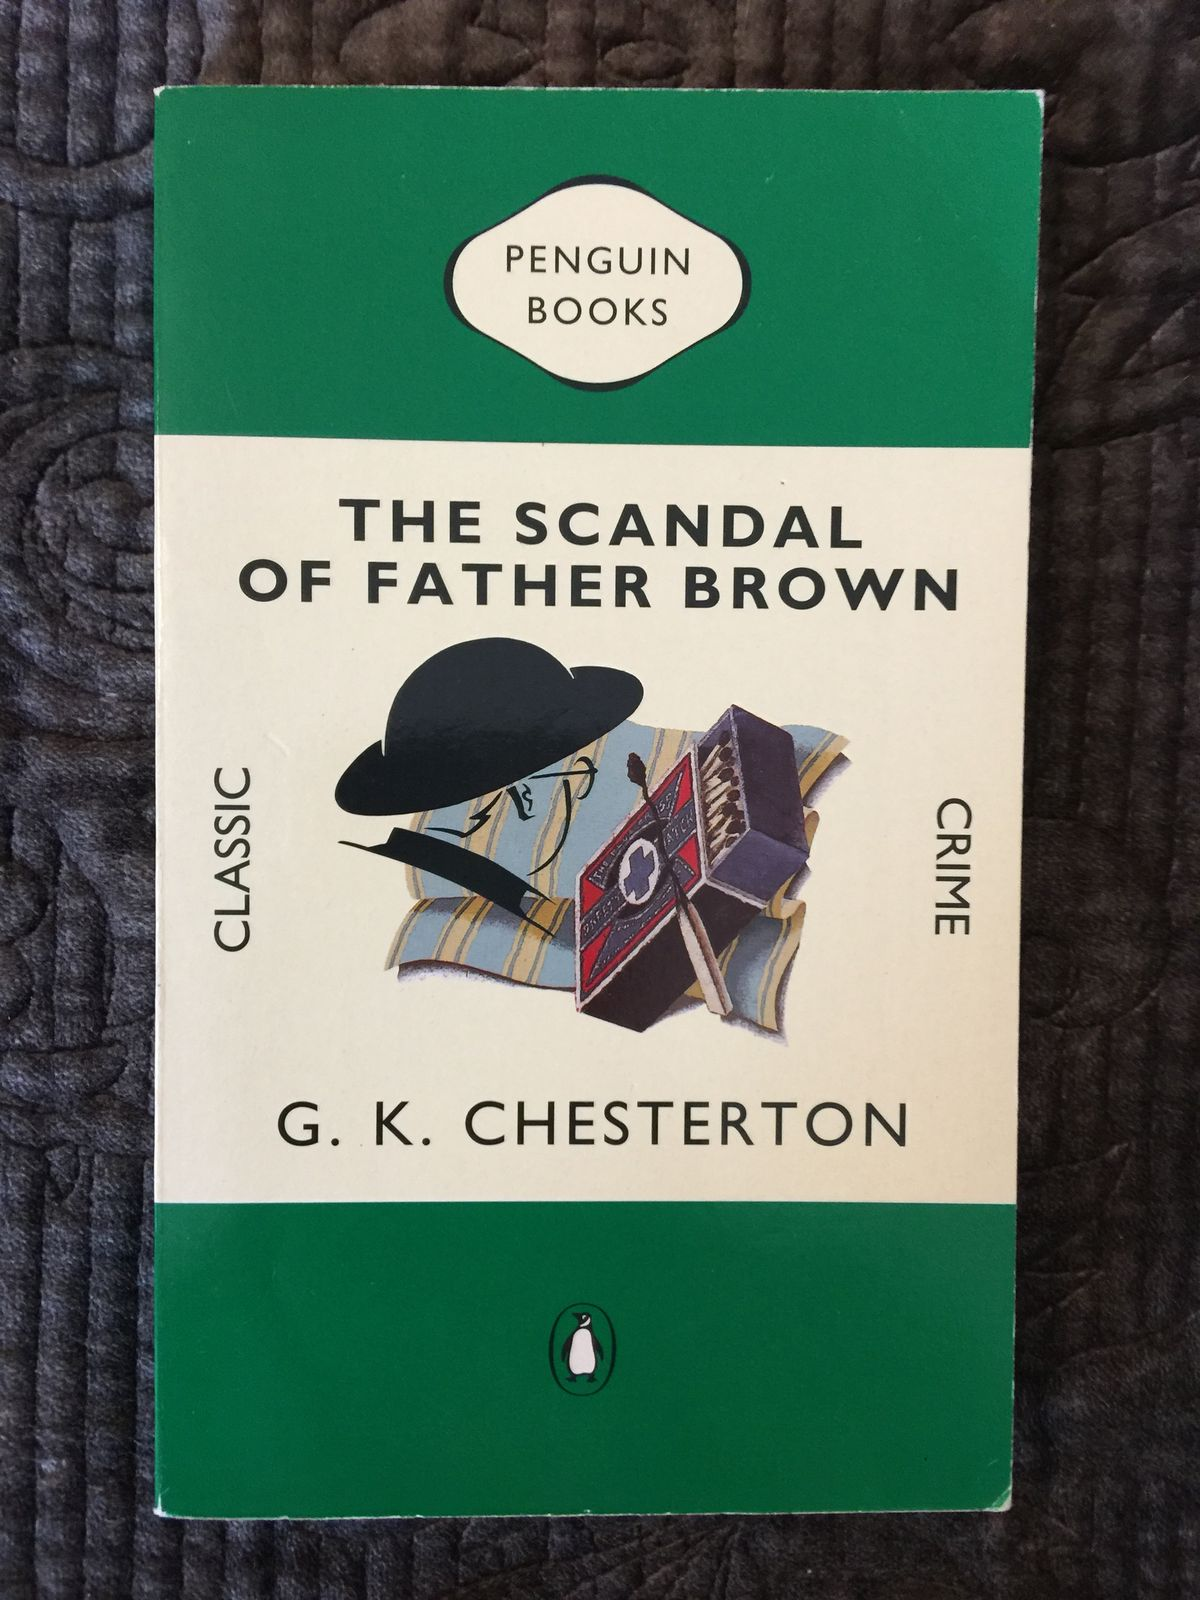 G k chesterton the scandal of father brown vintage style